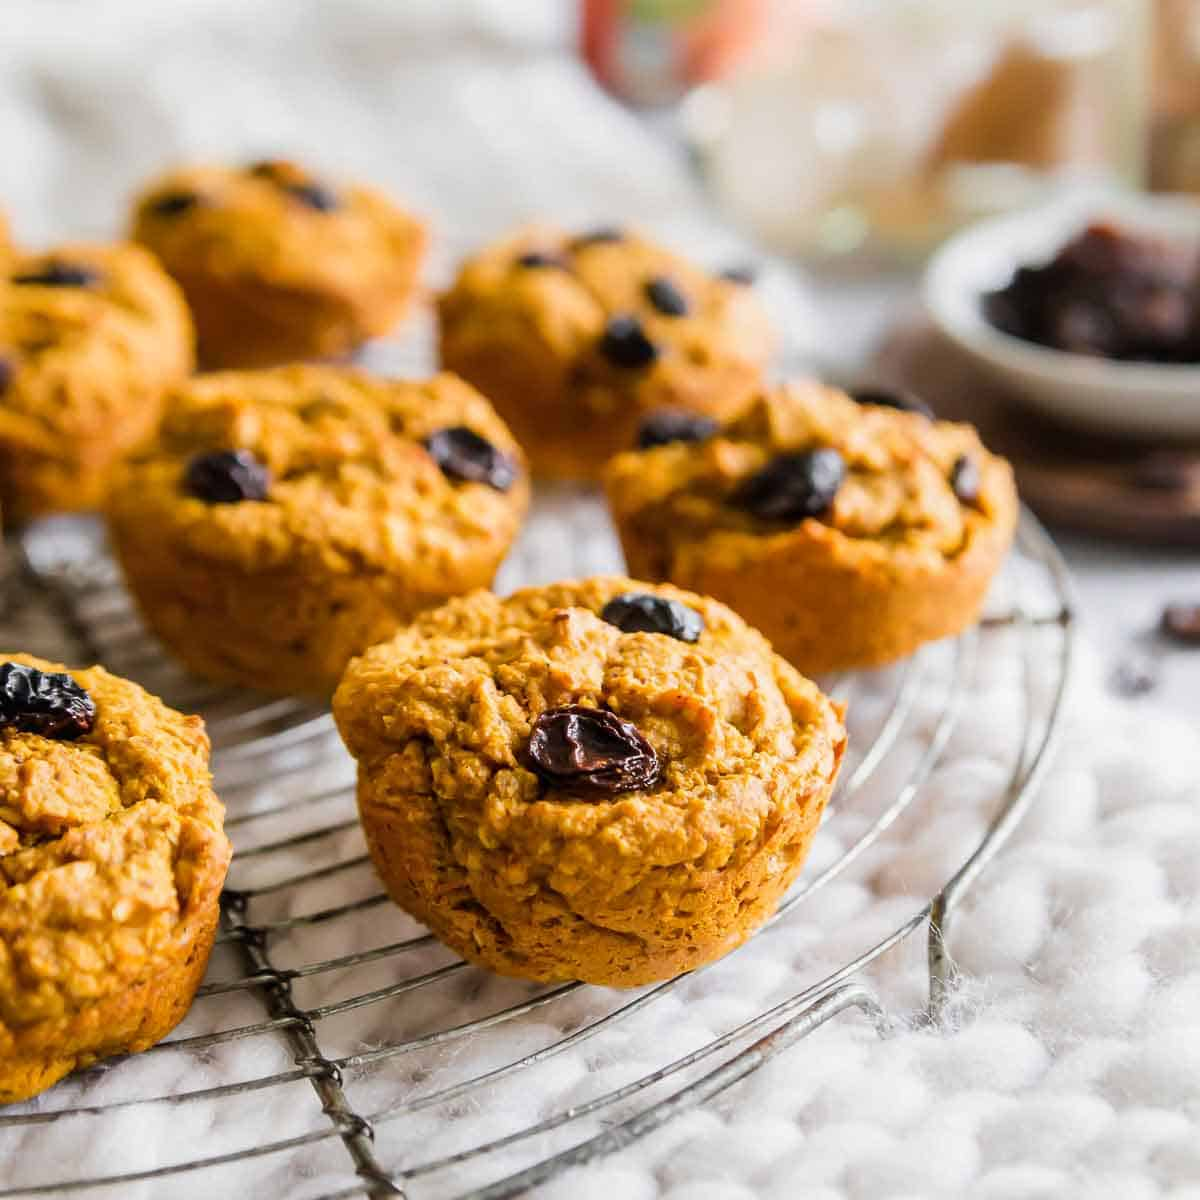 These gluten-free, vegan sweet potato bran muffins are studded with raisins for a healthy, hearty and nutrient dense breakfast or snack. Just over 100 calories each!